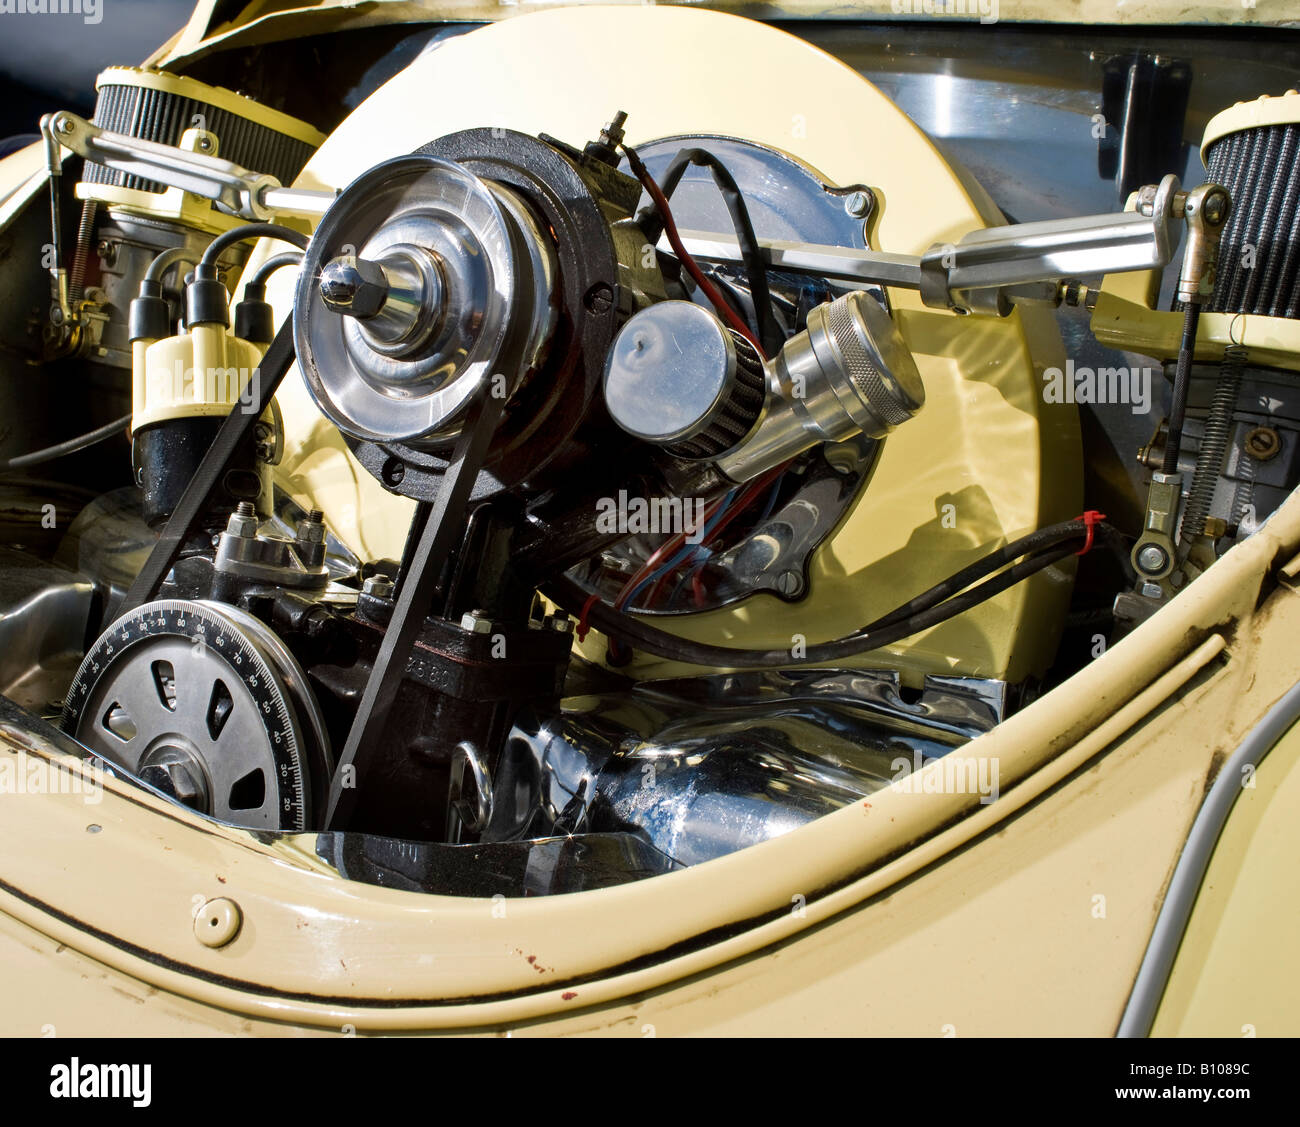 Vw Beetle Wankel Engine: Camping 1950s Stock Photos & Camping 1950s Stock Images